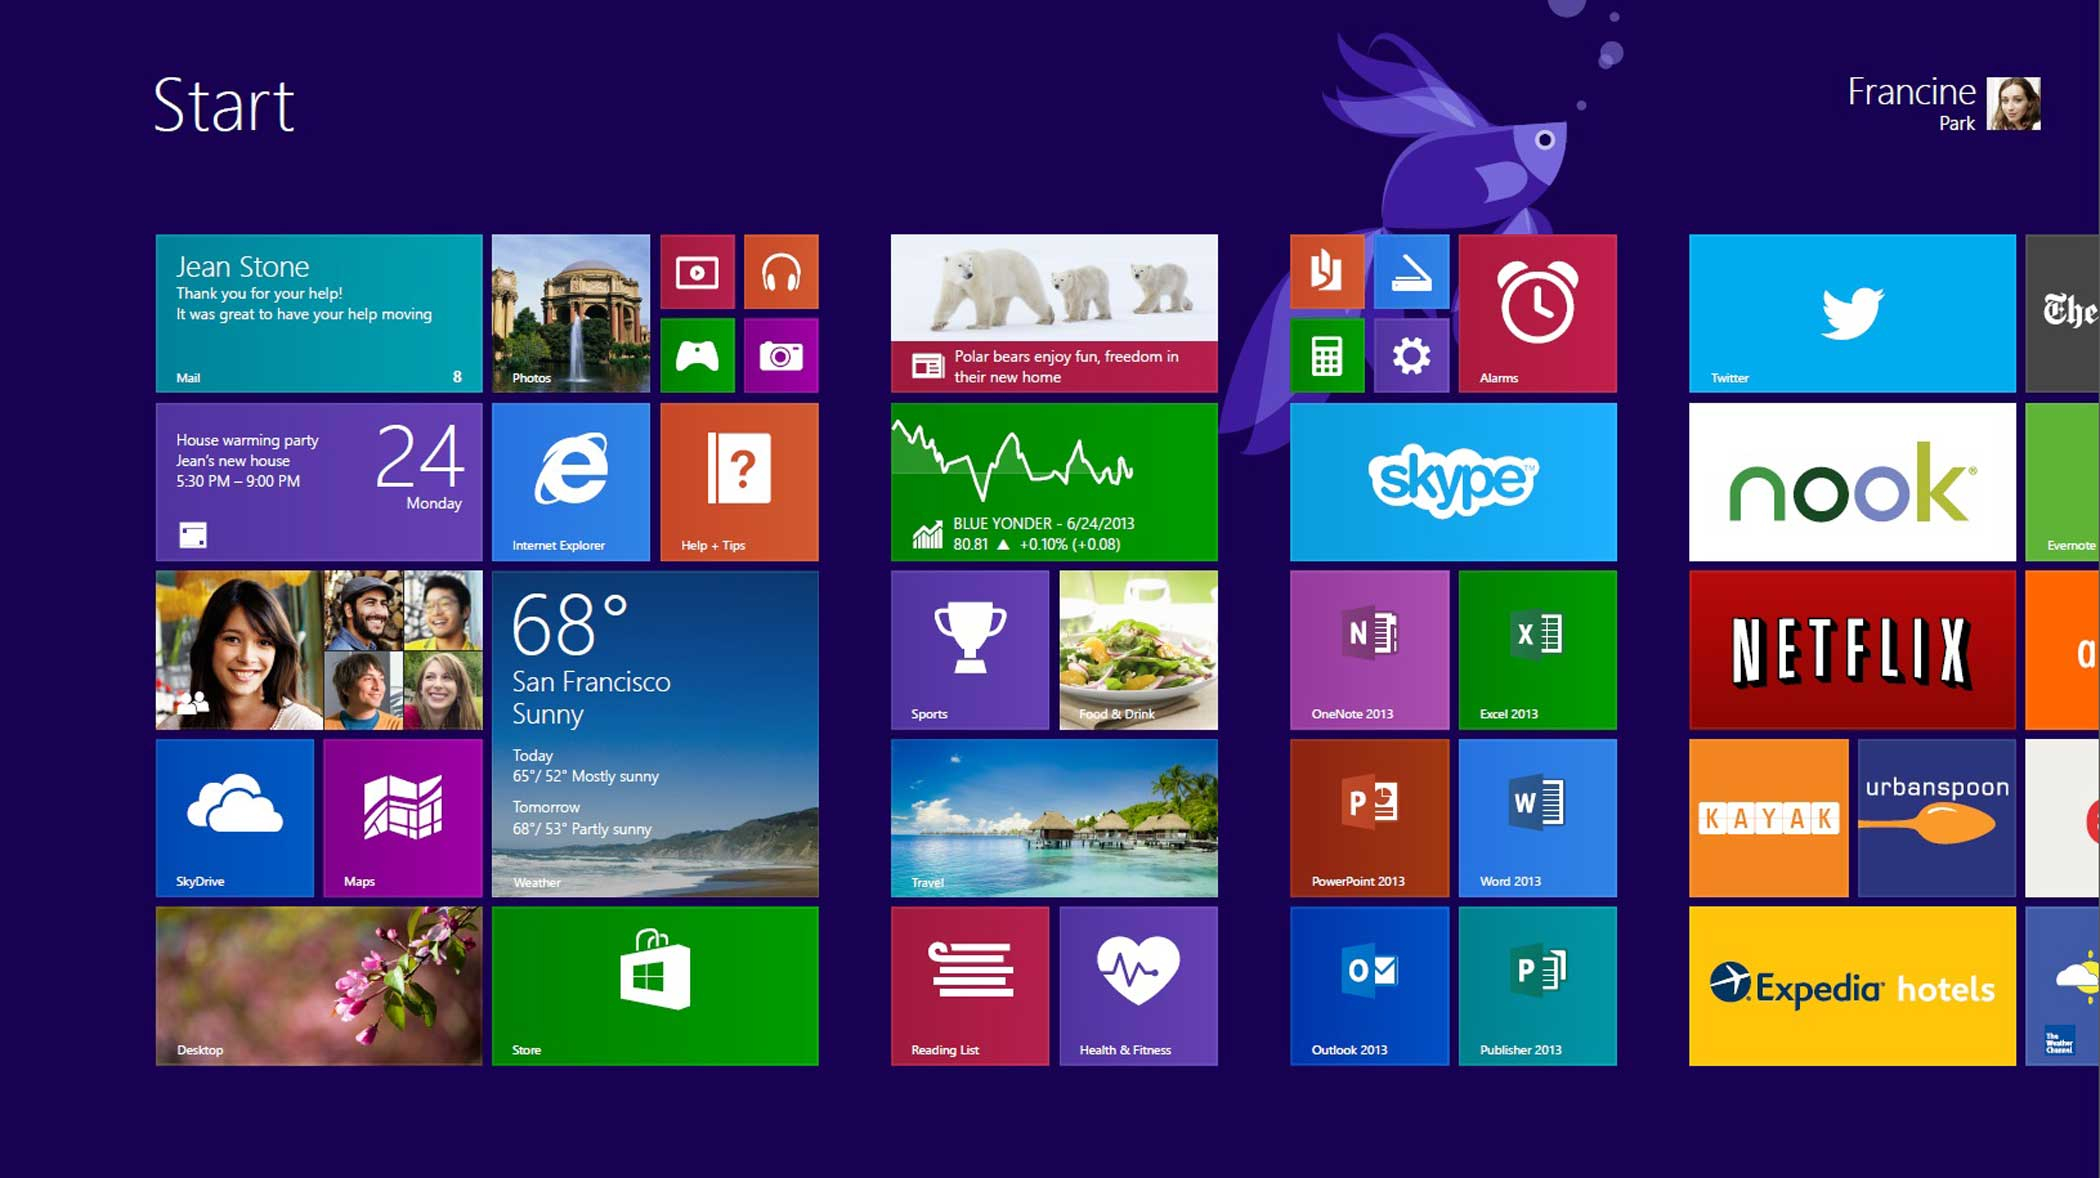 Windows 8.1 released on 17, 2013, attempts to bridge the chasm gap between touch and PC interfaces, offering users their choice of Start screens. By now, tech pundits have a theory: every release of Windows alternates between hits and misses, setting expectations high for the next version, Windows 10.